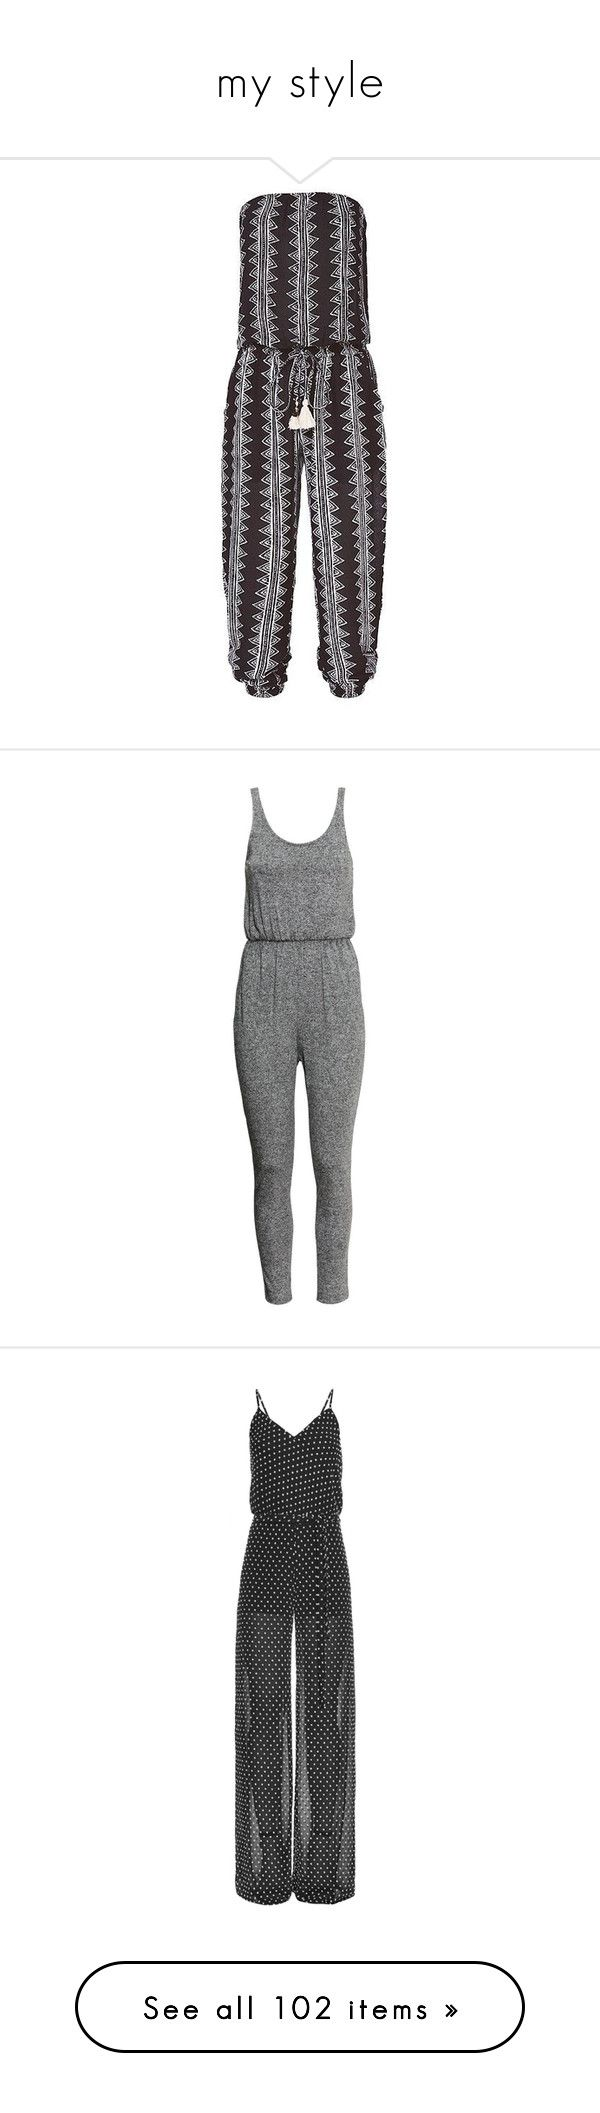 """my style"" by simpsonizer0718 ❤ liked on Polyvore featuring jumpsuits, strapless jumpsuit, beach jumpsuit, jump suit, rompers, dresses, playsuits, one piece, dark grey marl and h&m romper"